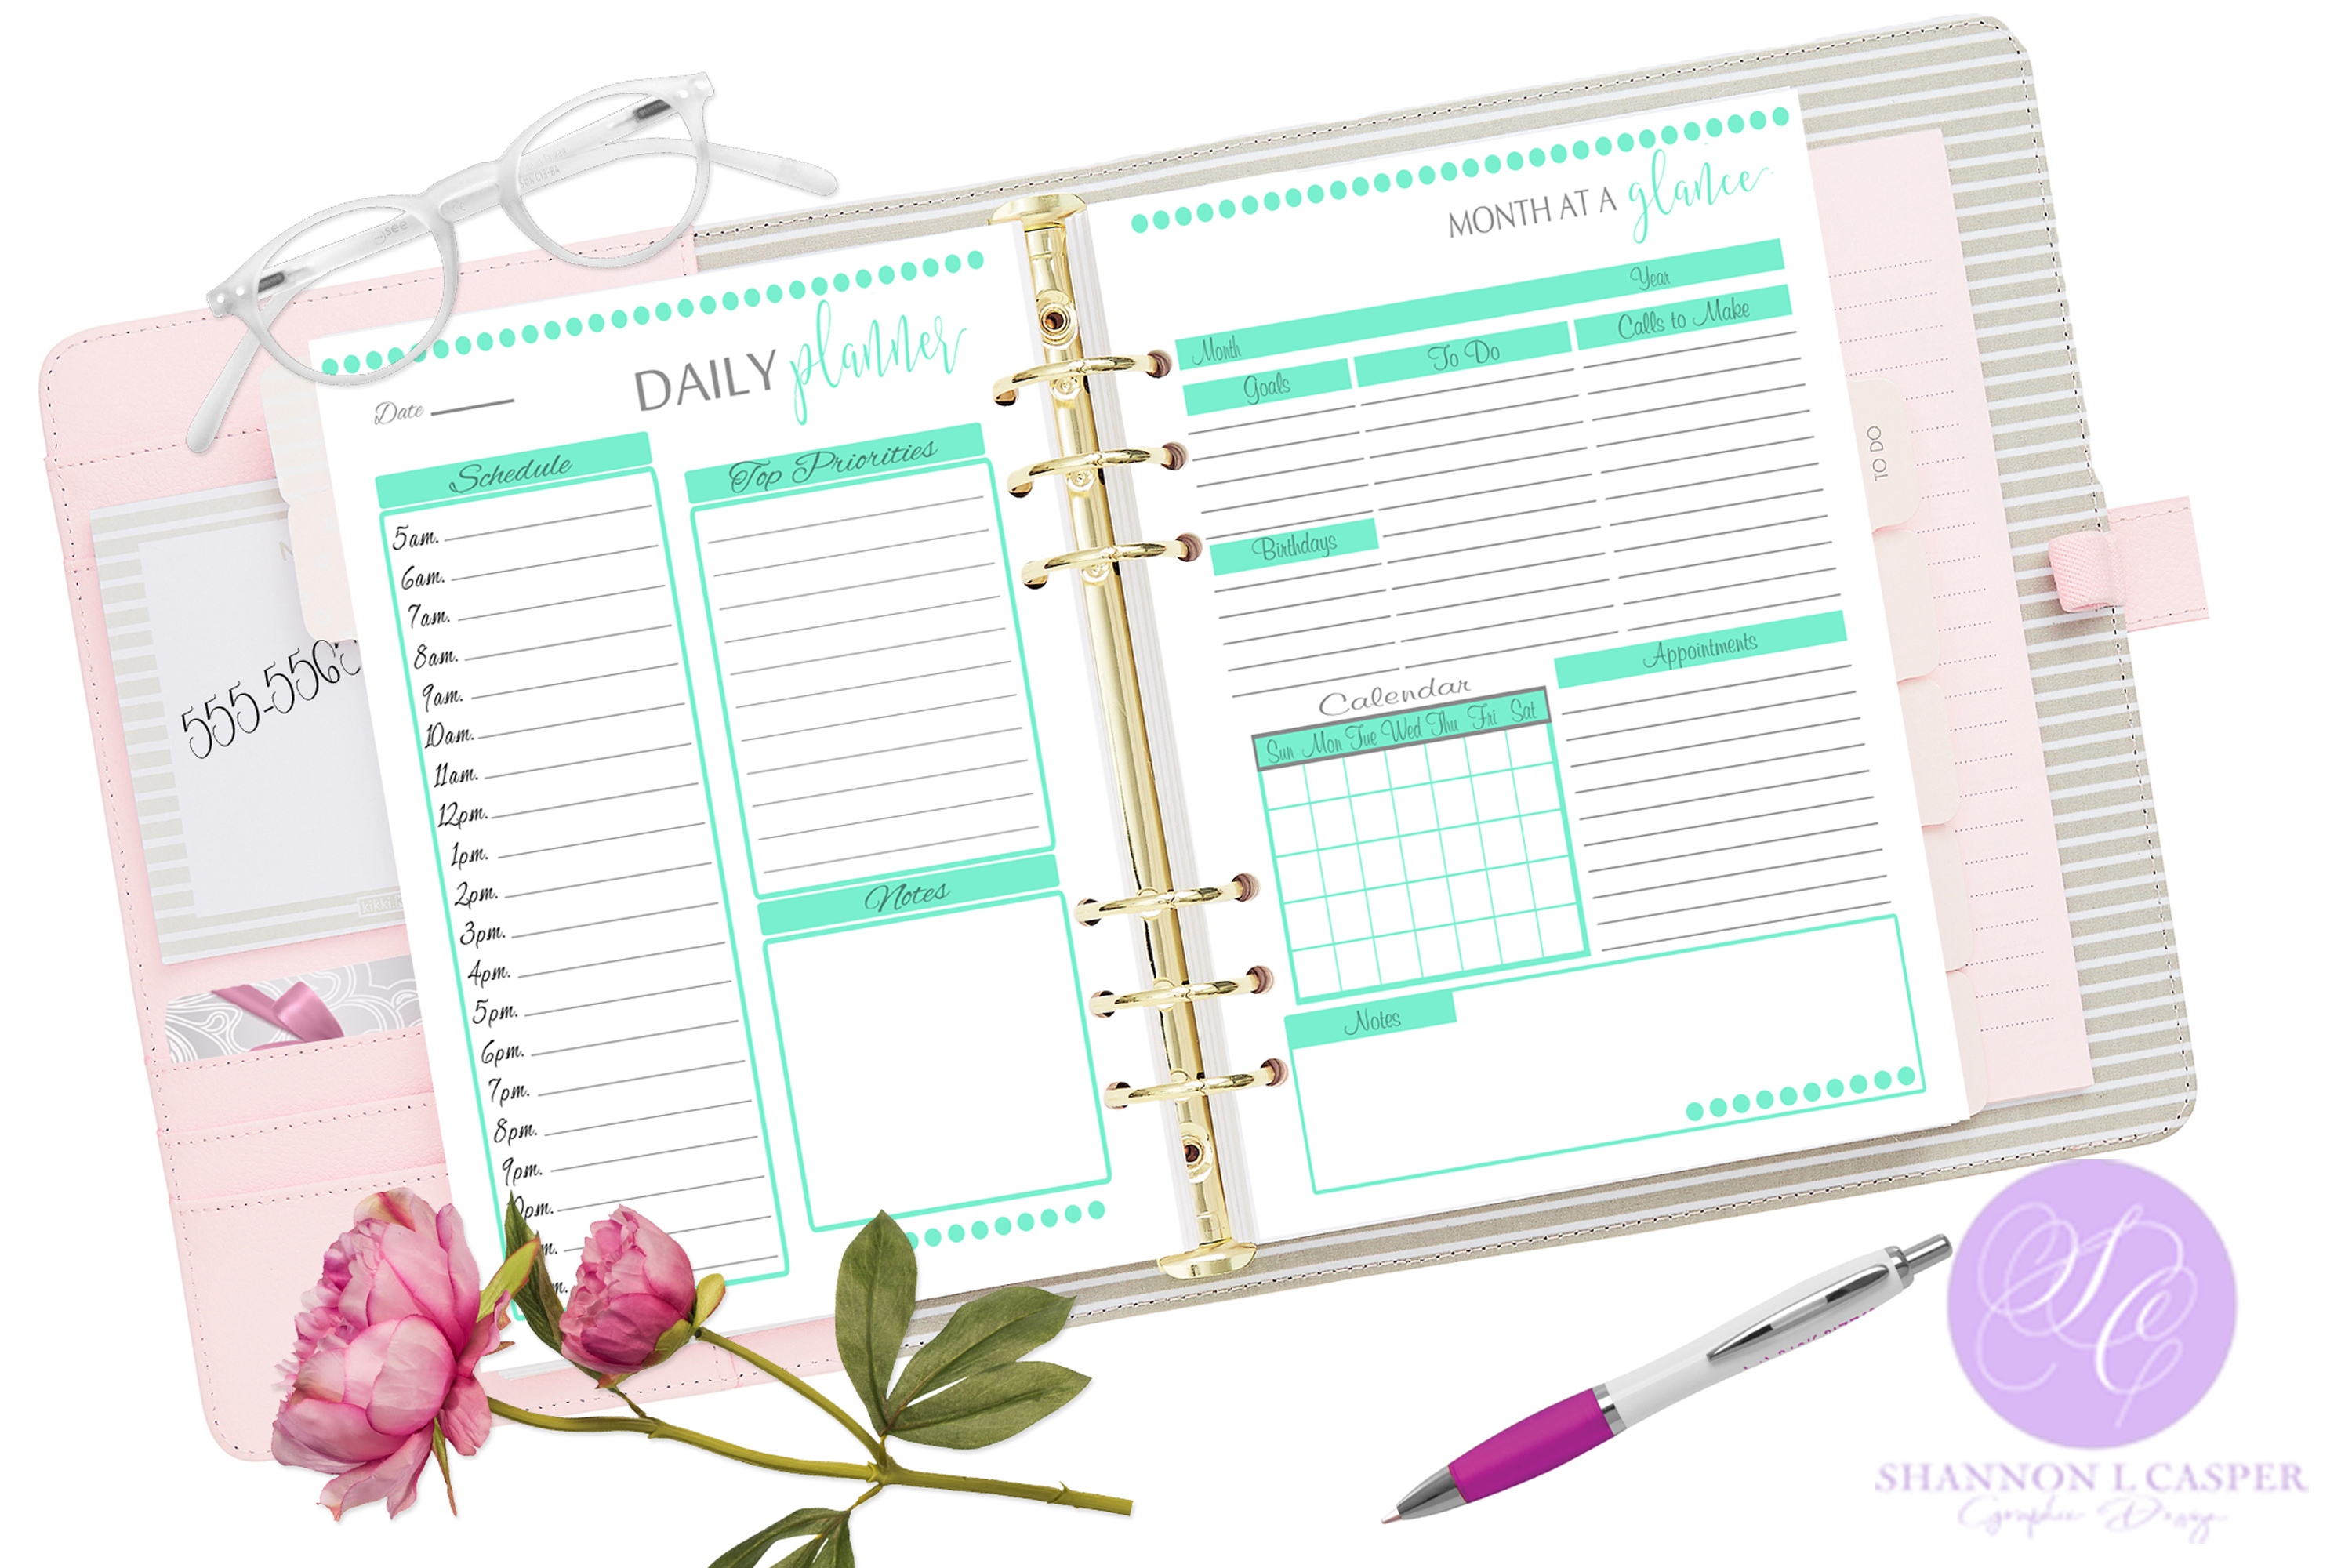 Printable Daily Weekly Monthly Planner Sheets example image 2